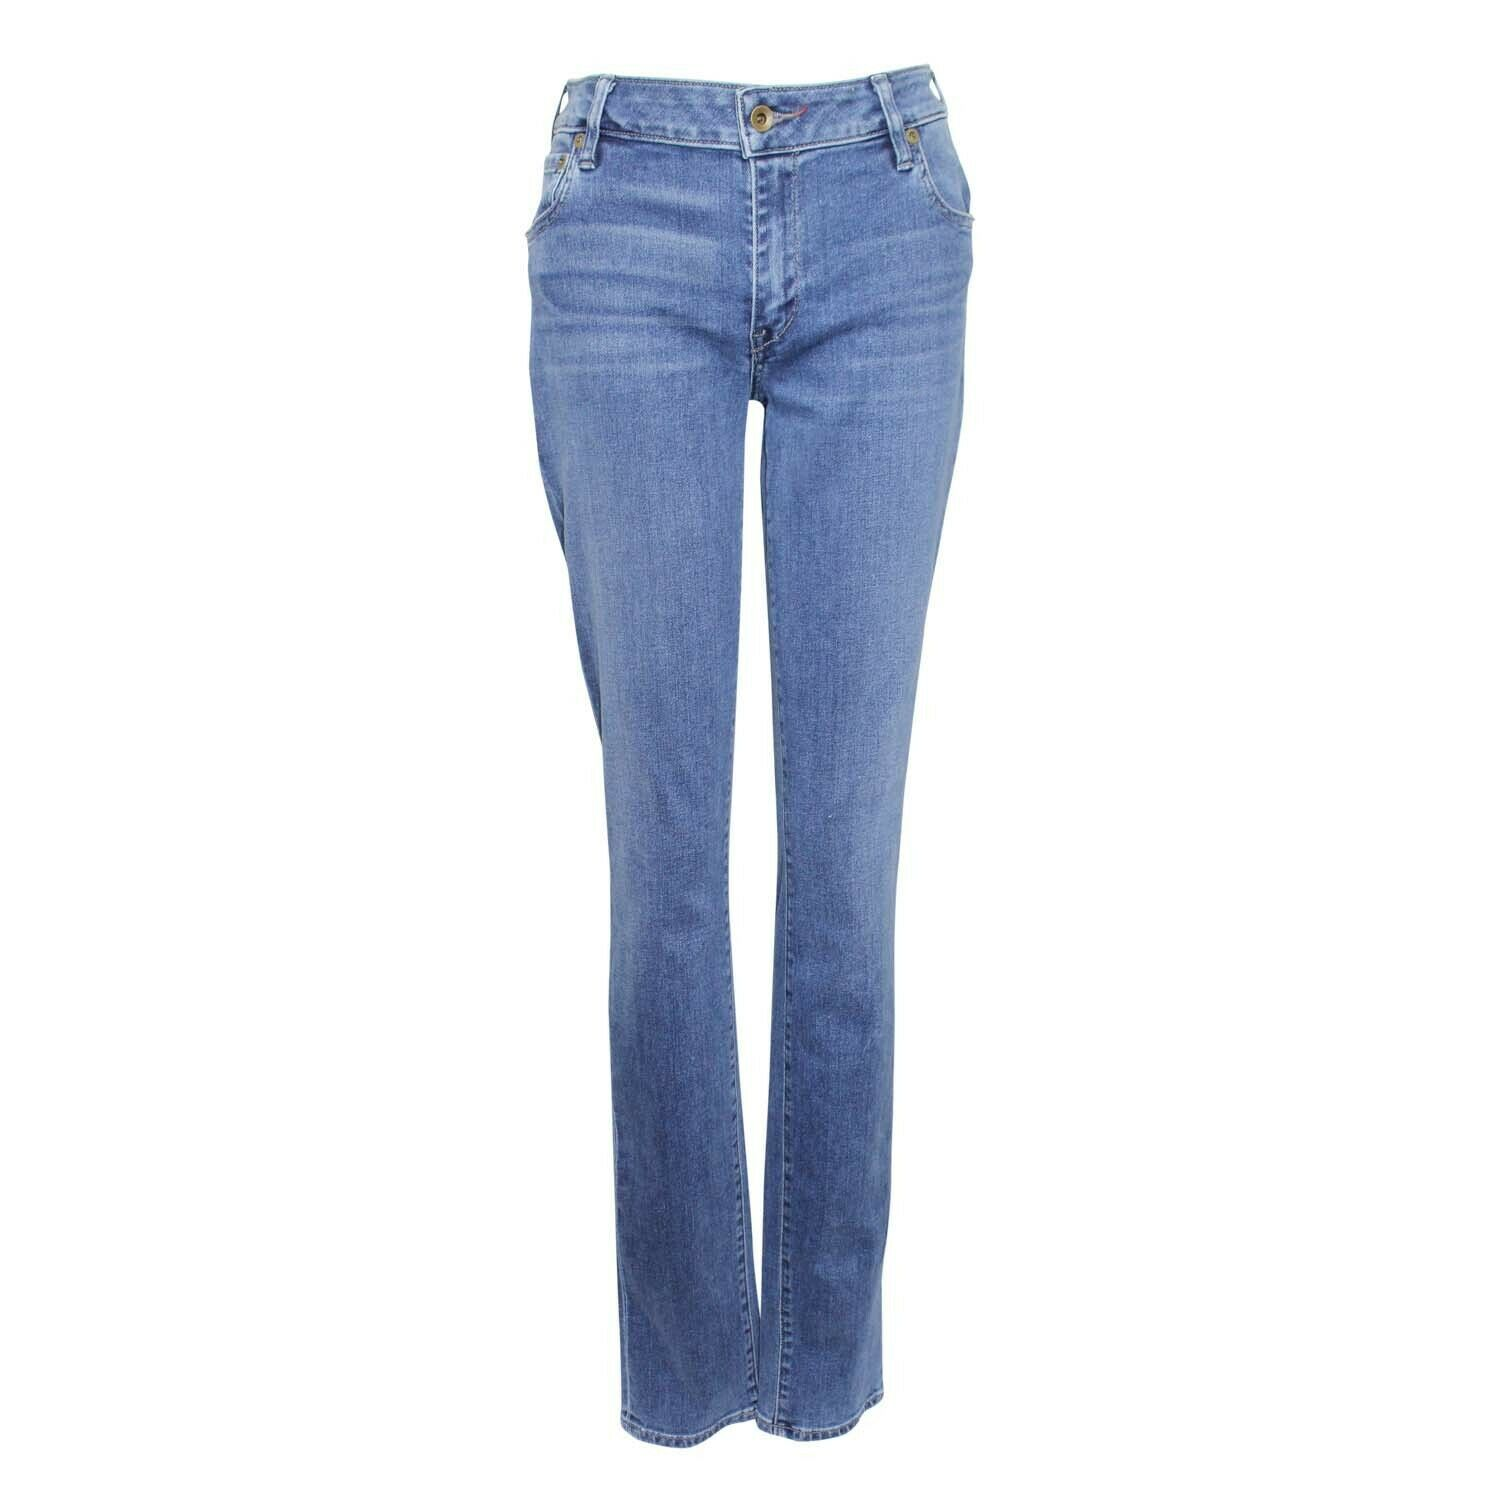 Raleigh Denim New With Tags Surry Skinny Jean - bluee bluee